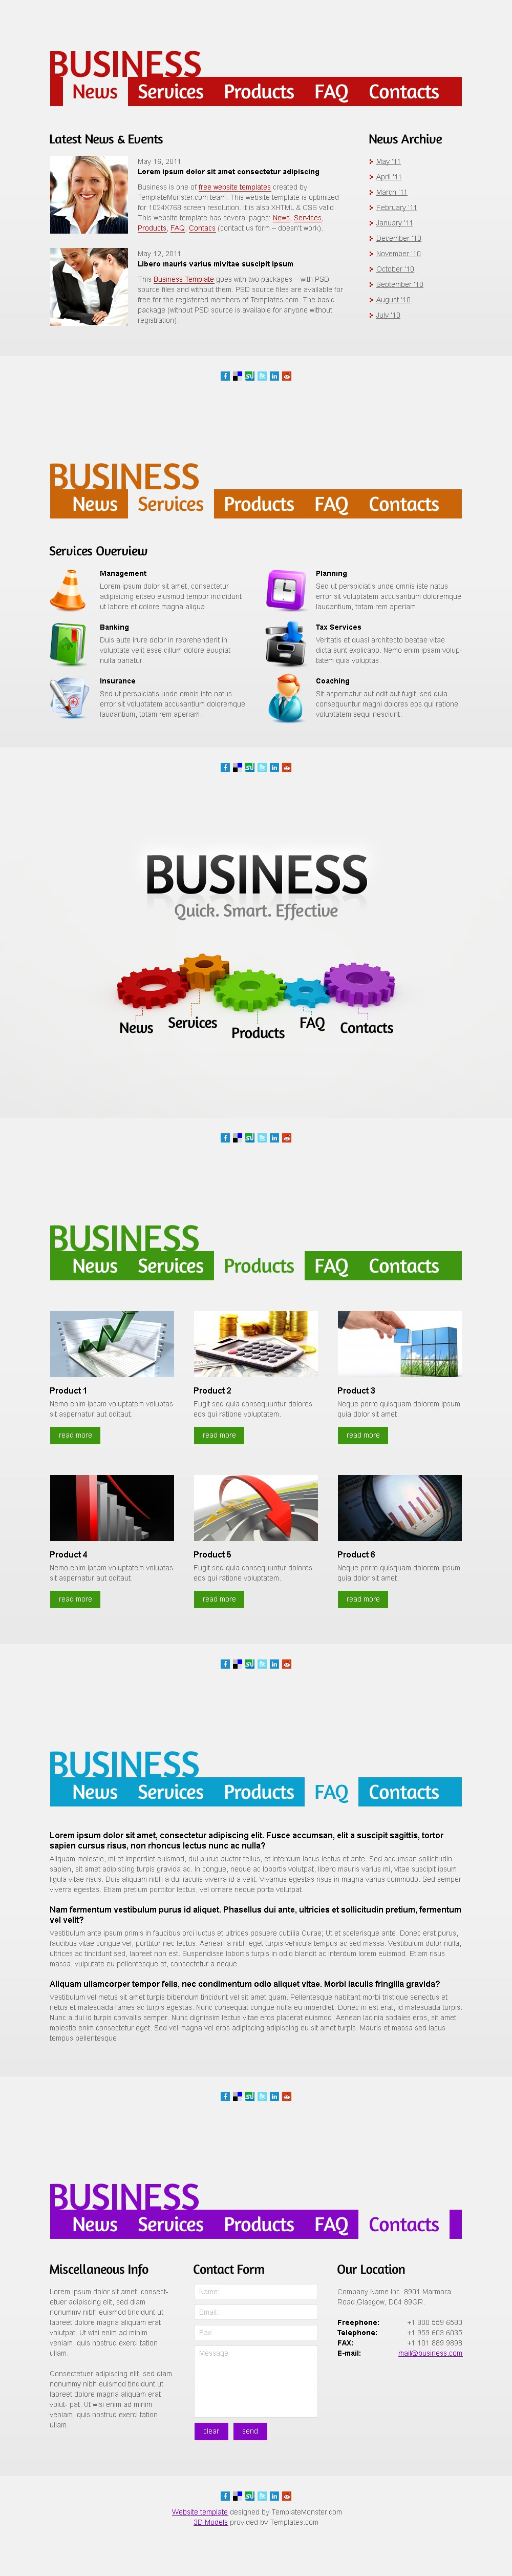 Free business web template single page layout zoom in cheaphphosting Choice Image